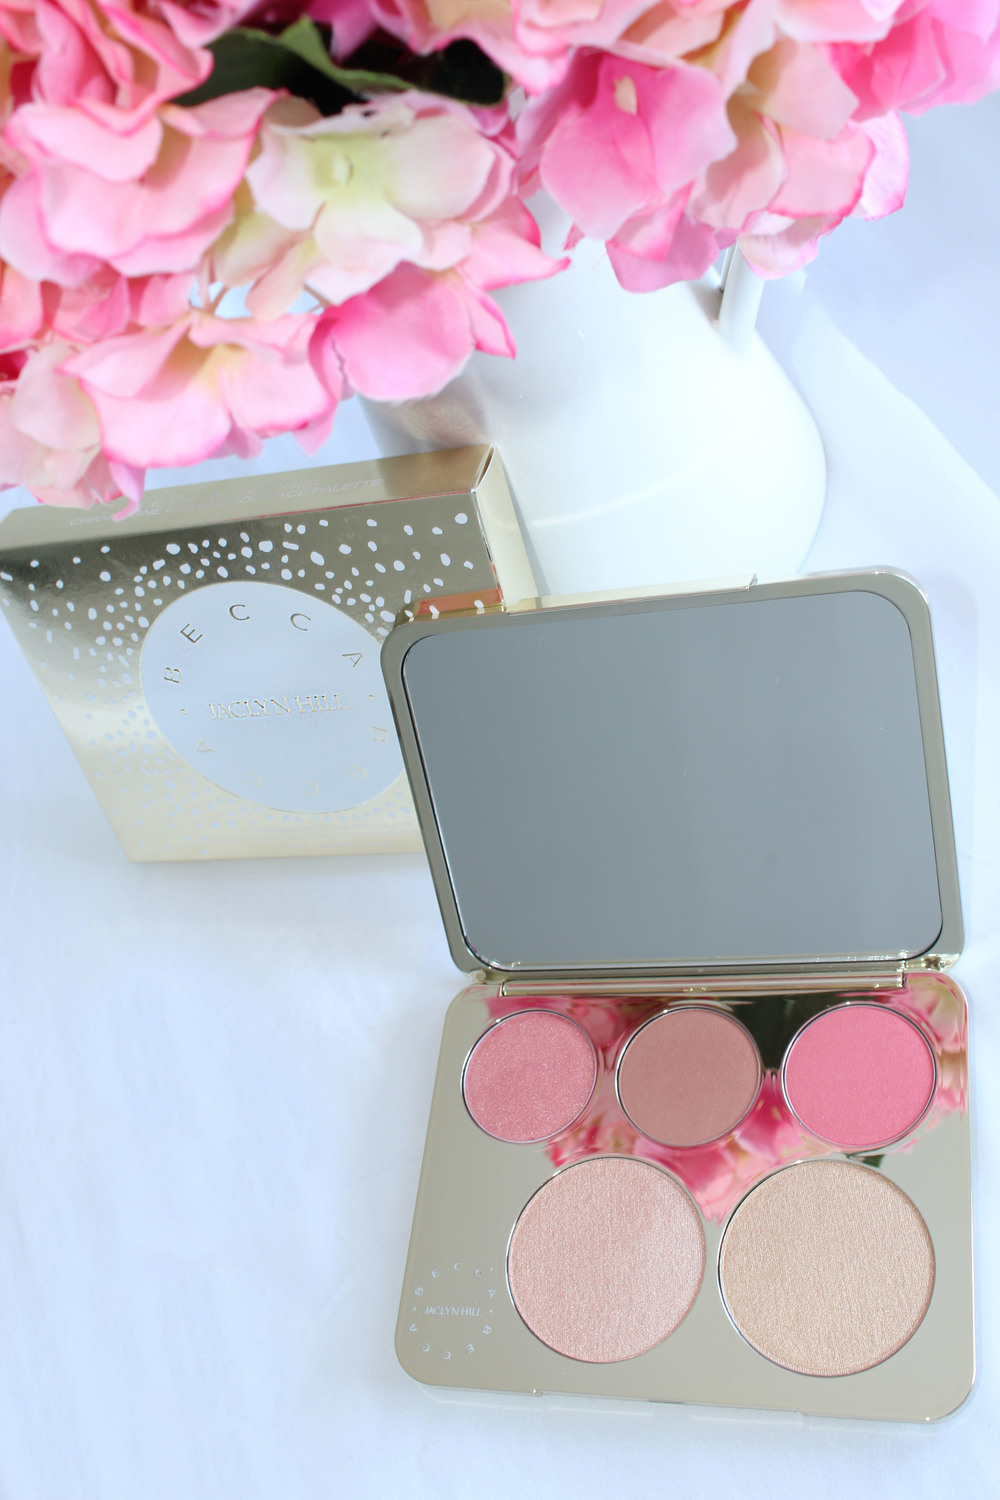 Becca x Jaclyn Hill Champagne Collection Face Palette product